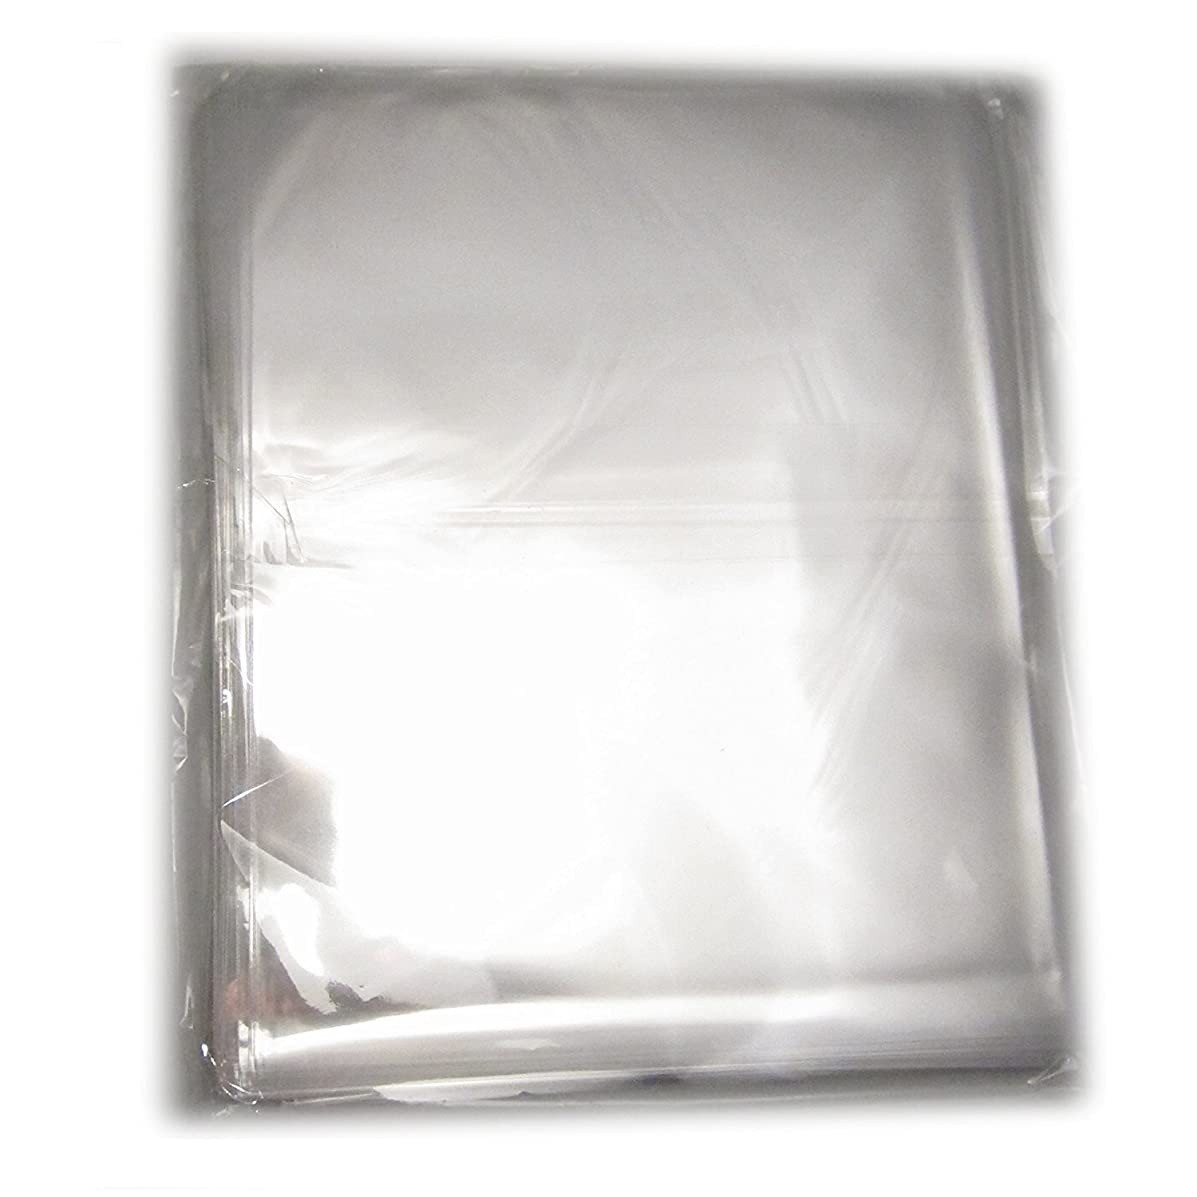 200Pcs 12x16 Clear Resealable Cello/Cellophane Bags Treat Bag OPP Plastic Bag with Adhesive Closure Good for Bakery, Candy, Cookie, Gift Bag, Clothing T-shirt Stroage,Party Favors